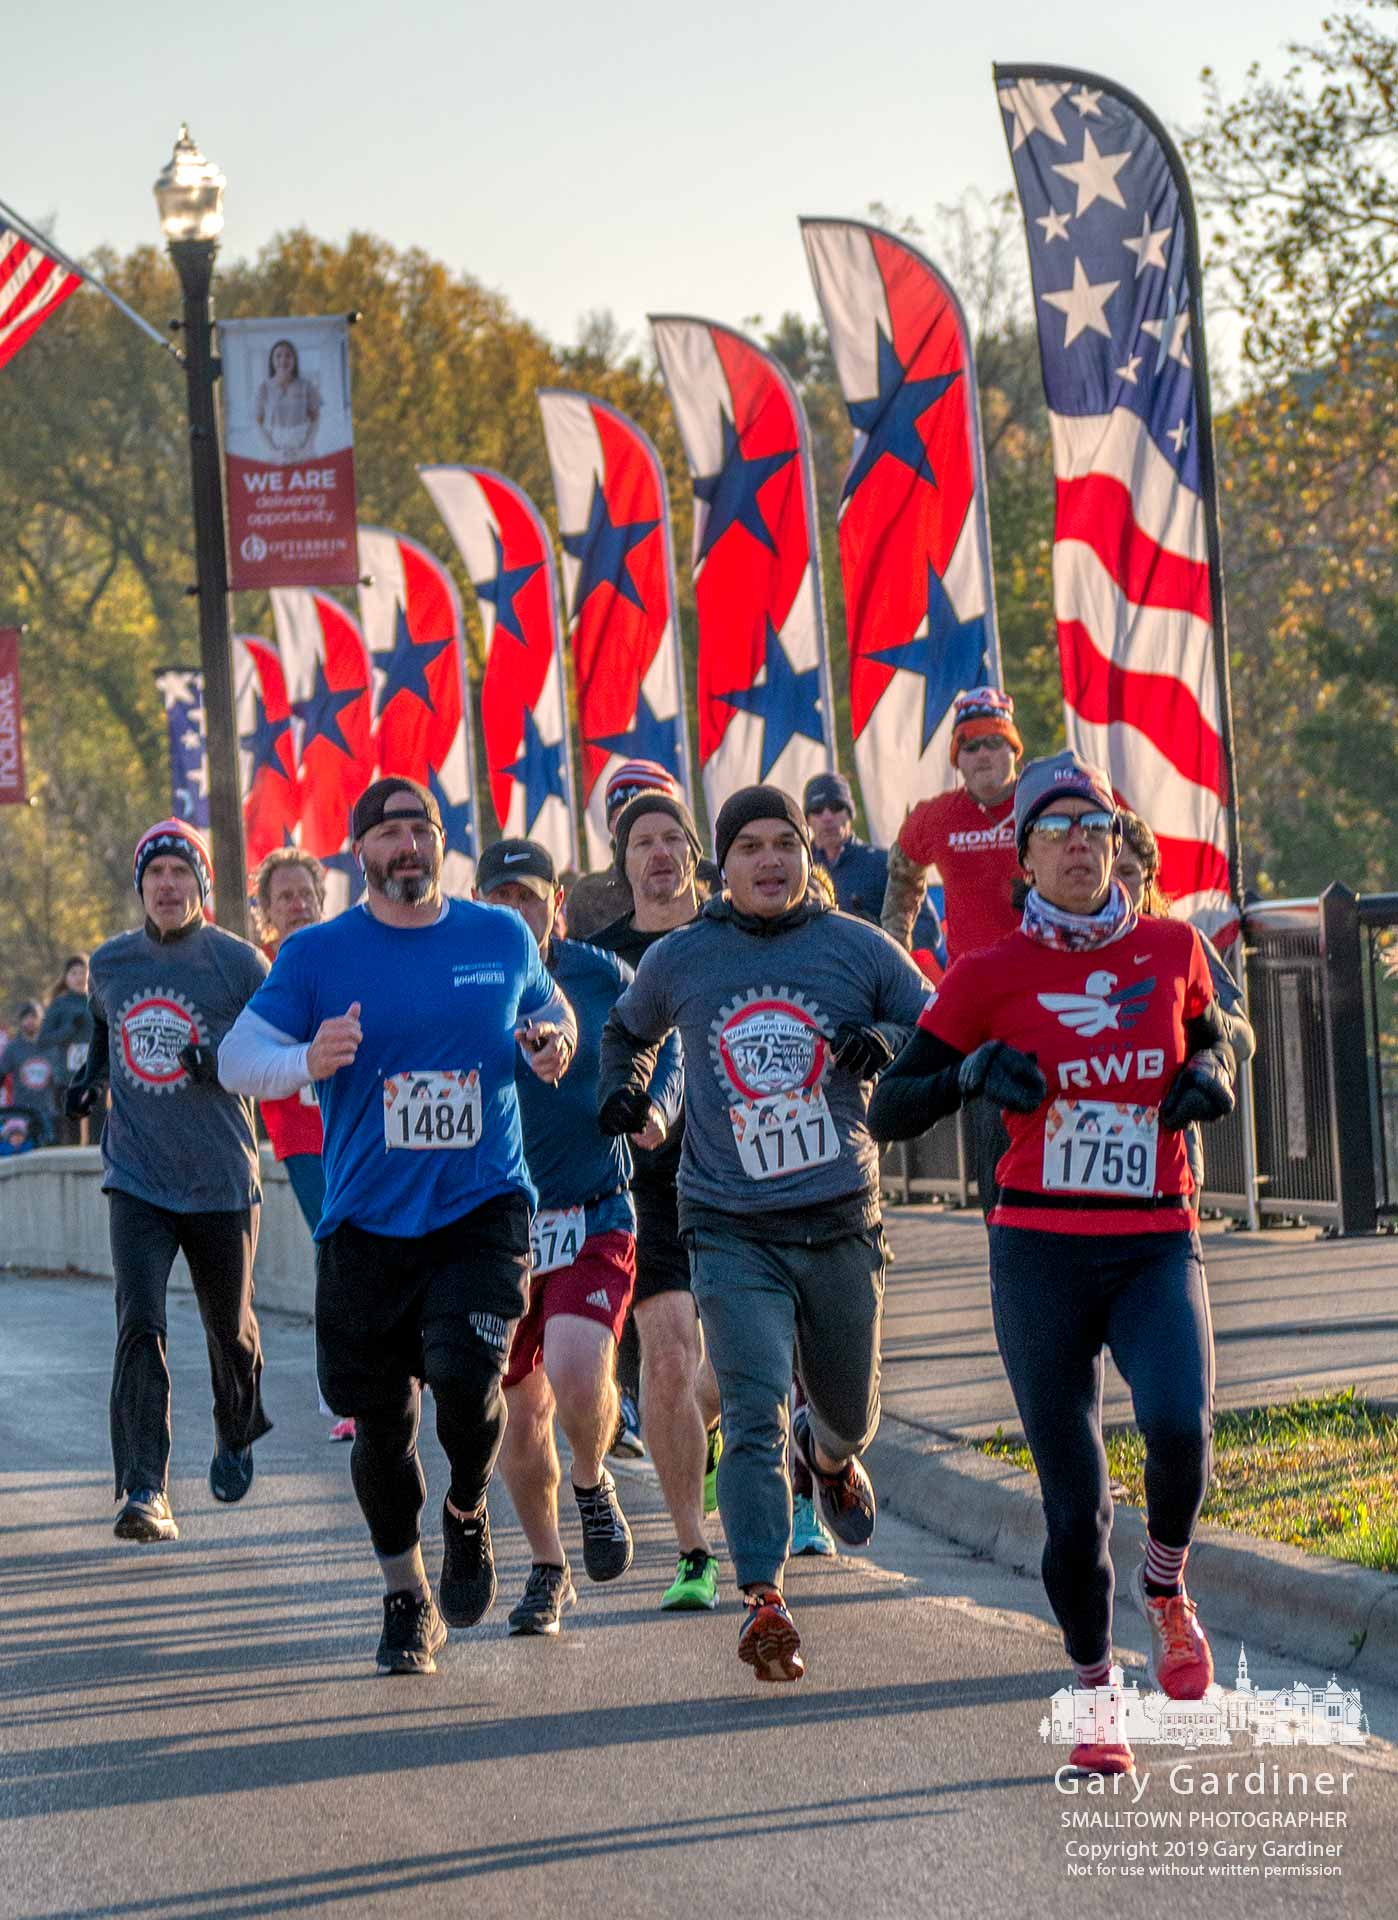 A group of runners crosses the Main Street bridge leading the pack in the Rotary Honors Veterans 5k Run early Saturday morning. My Final Photo for Nov. 2, 2019.